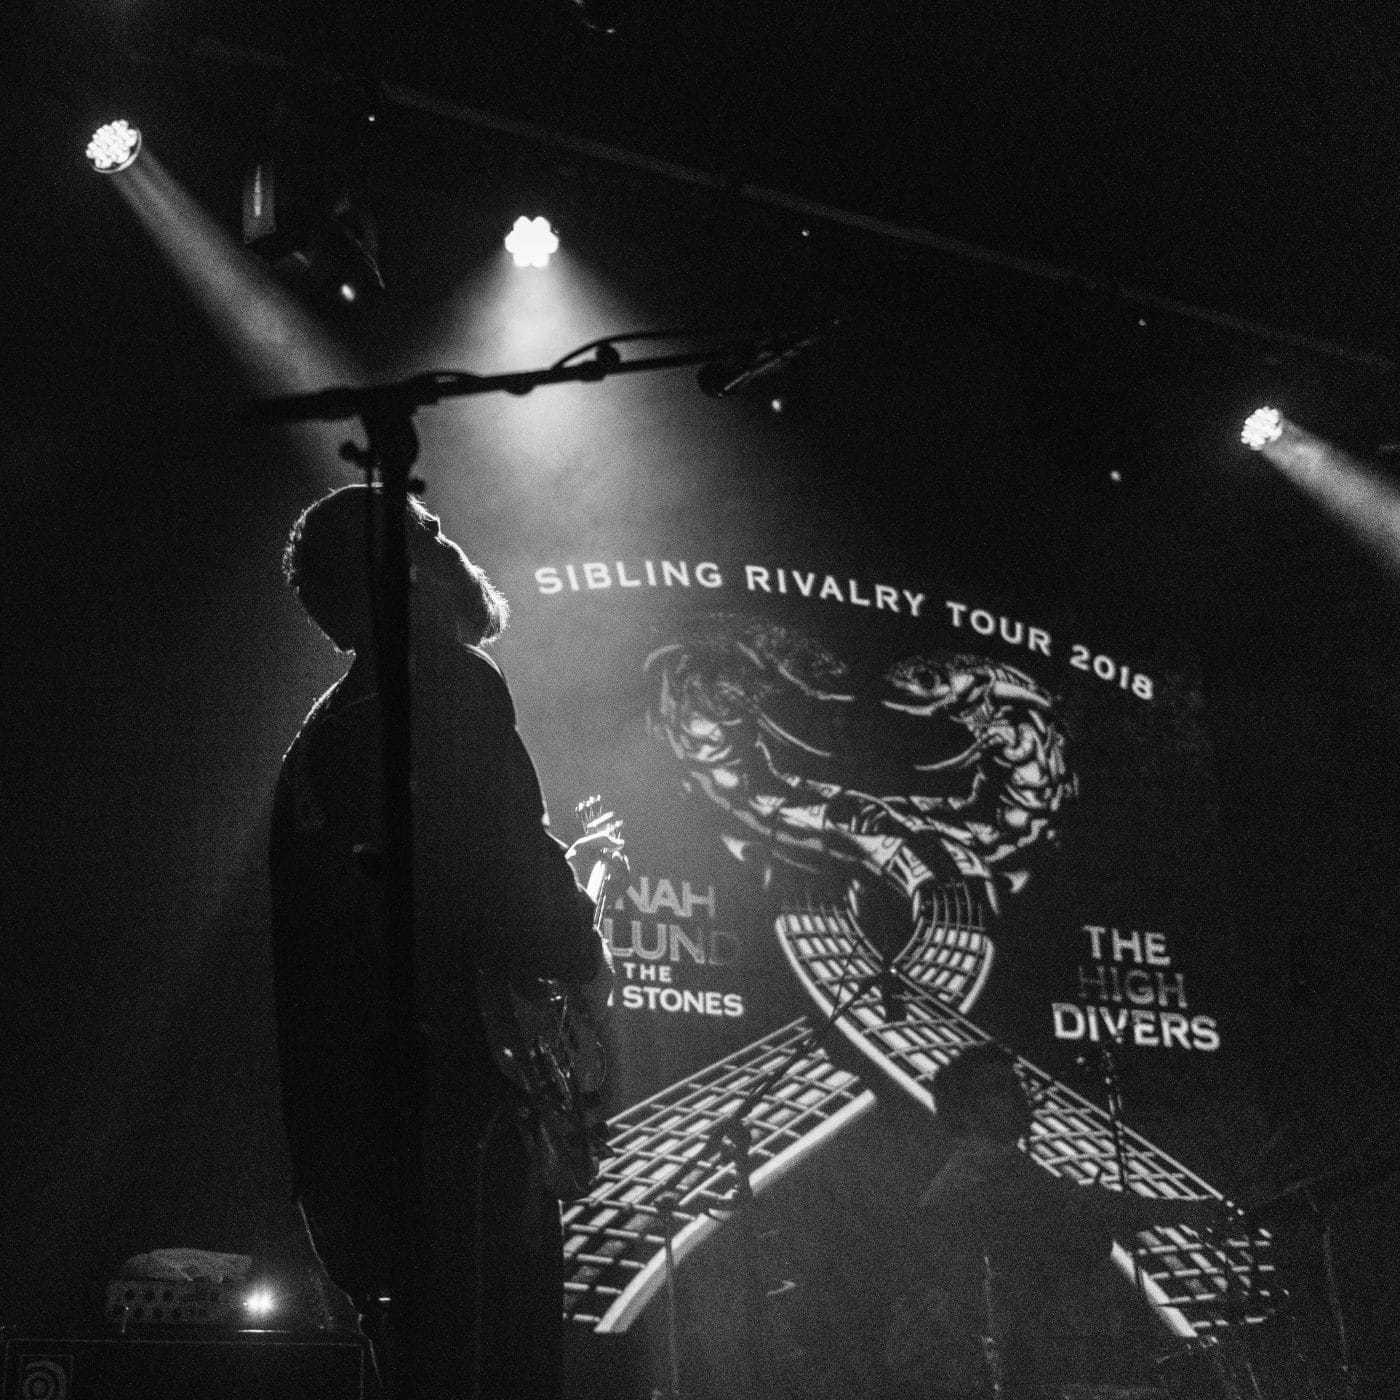 The High Divers : The Hamilton DC Live | Photos | LIVING LIFE FEARLESS